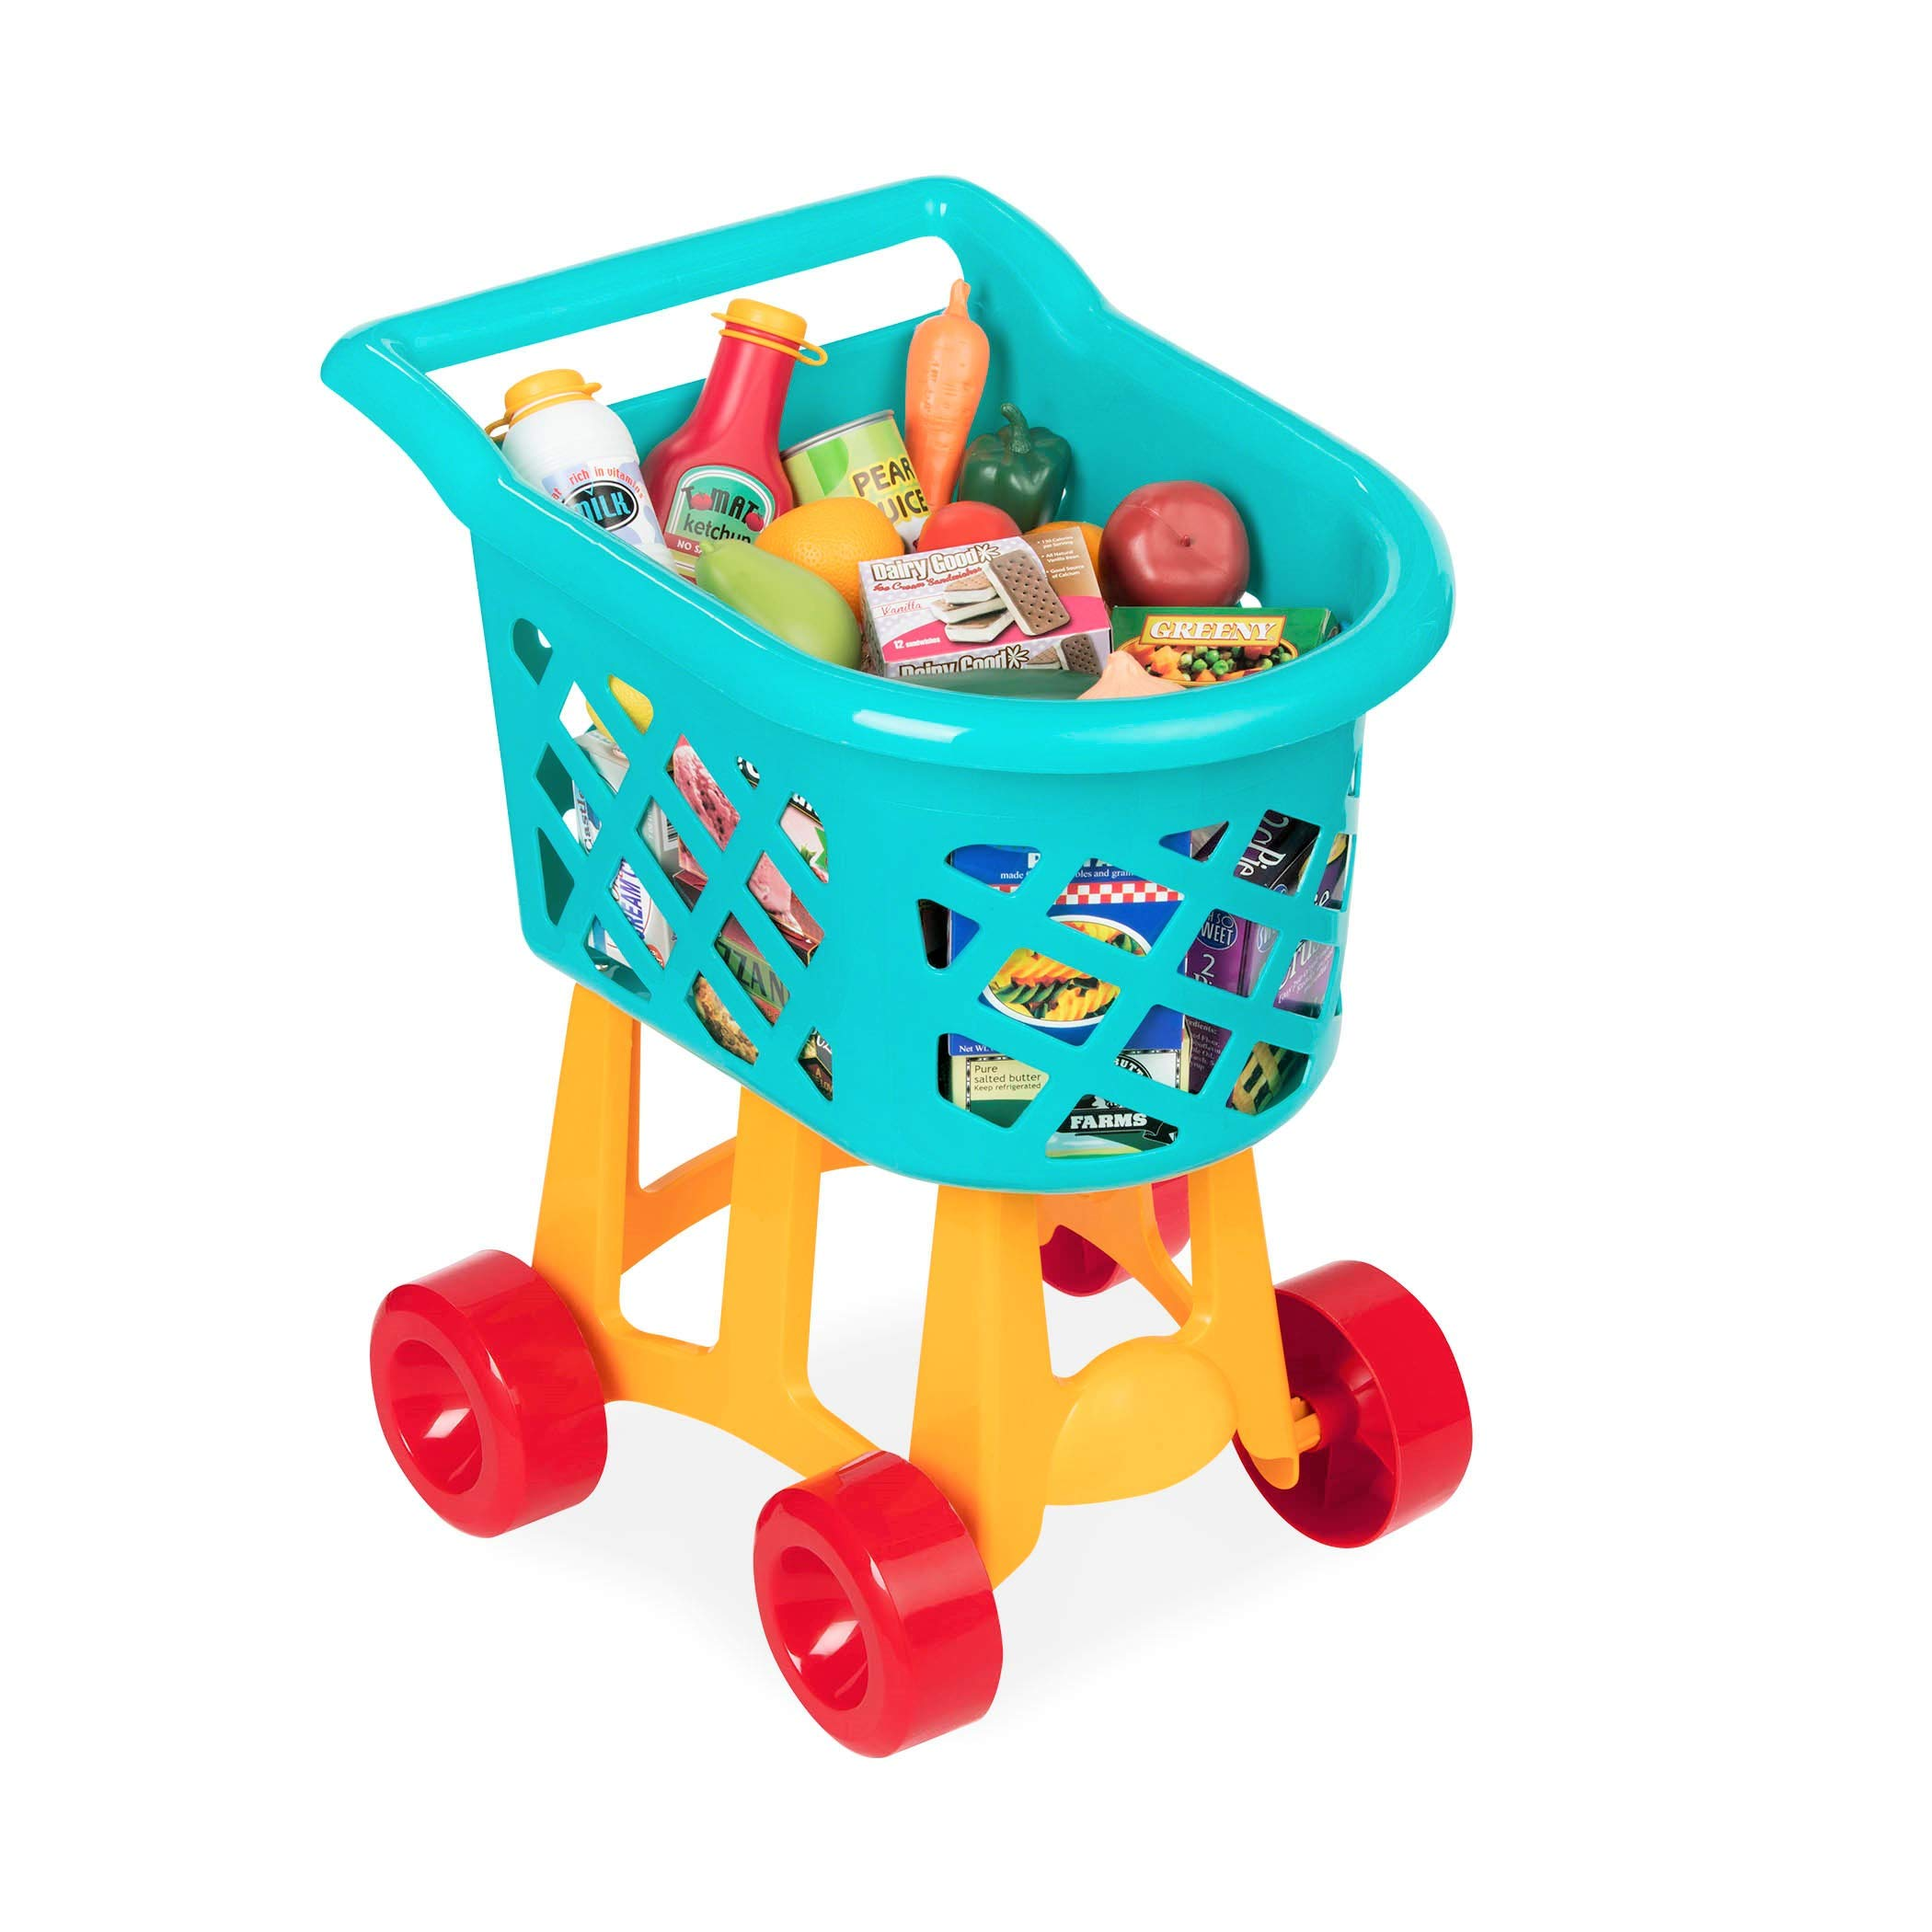 Battat Grocery Cart - Deluxe Toy Shopping Cart with Pretend Play Food Accessories for Kids 3+ (23Piece) by Battat